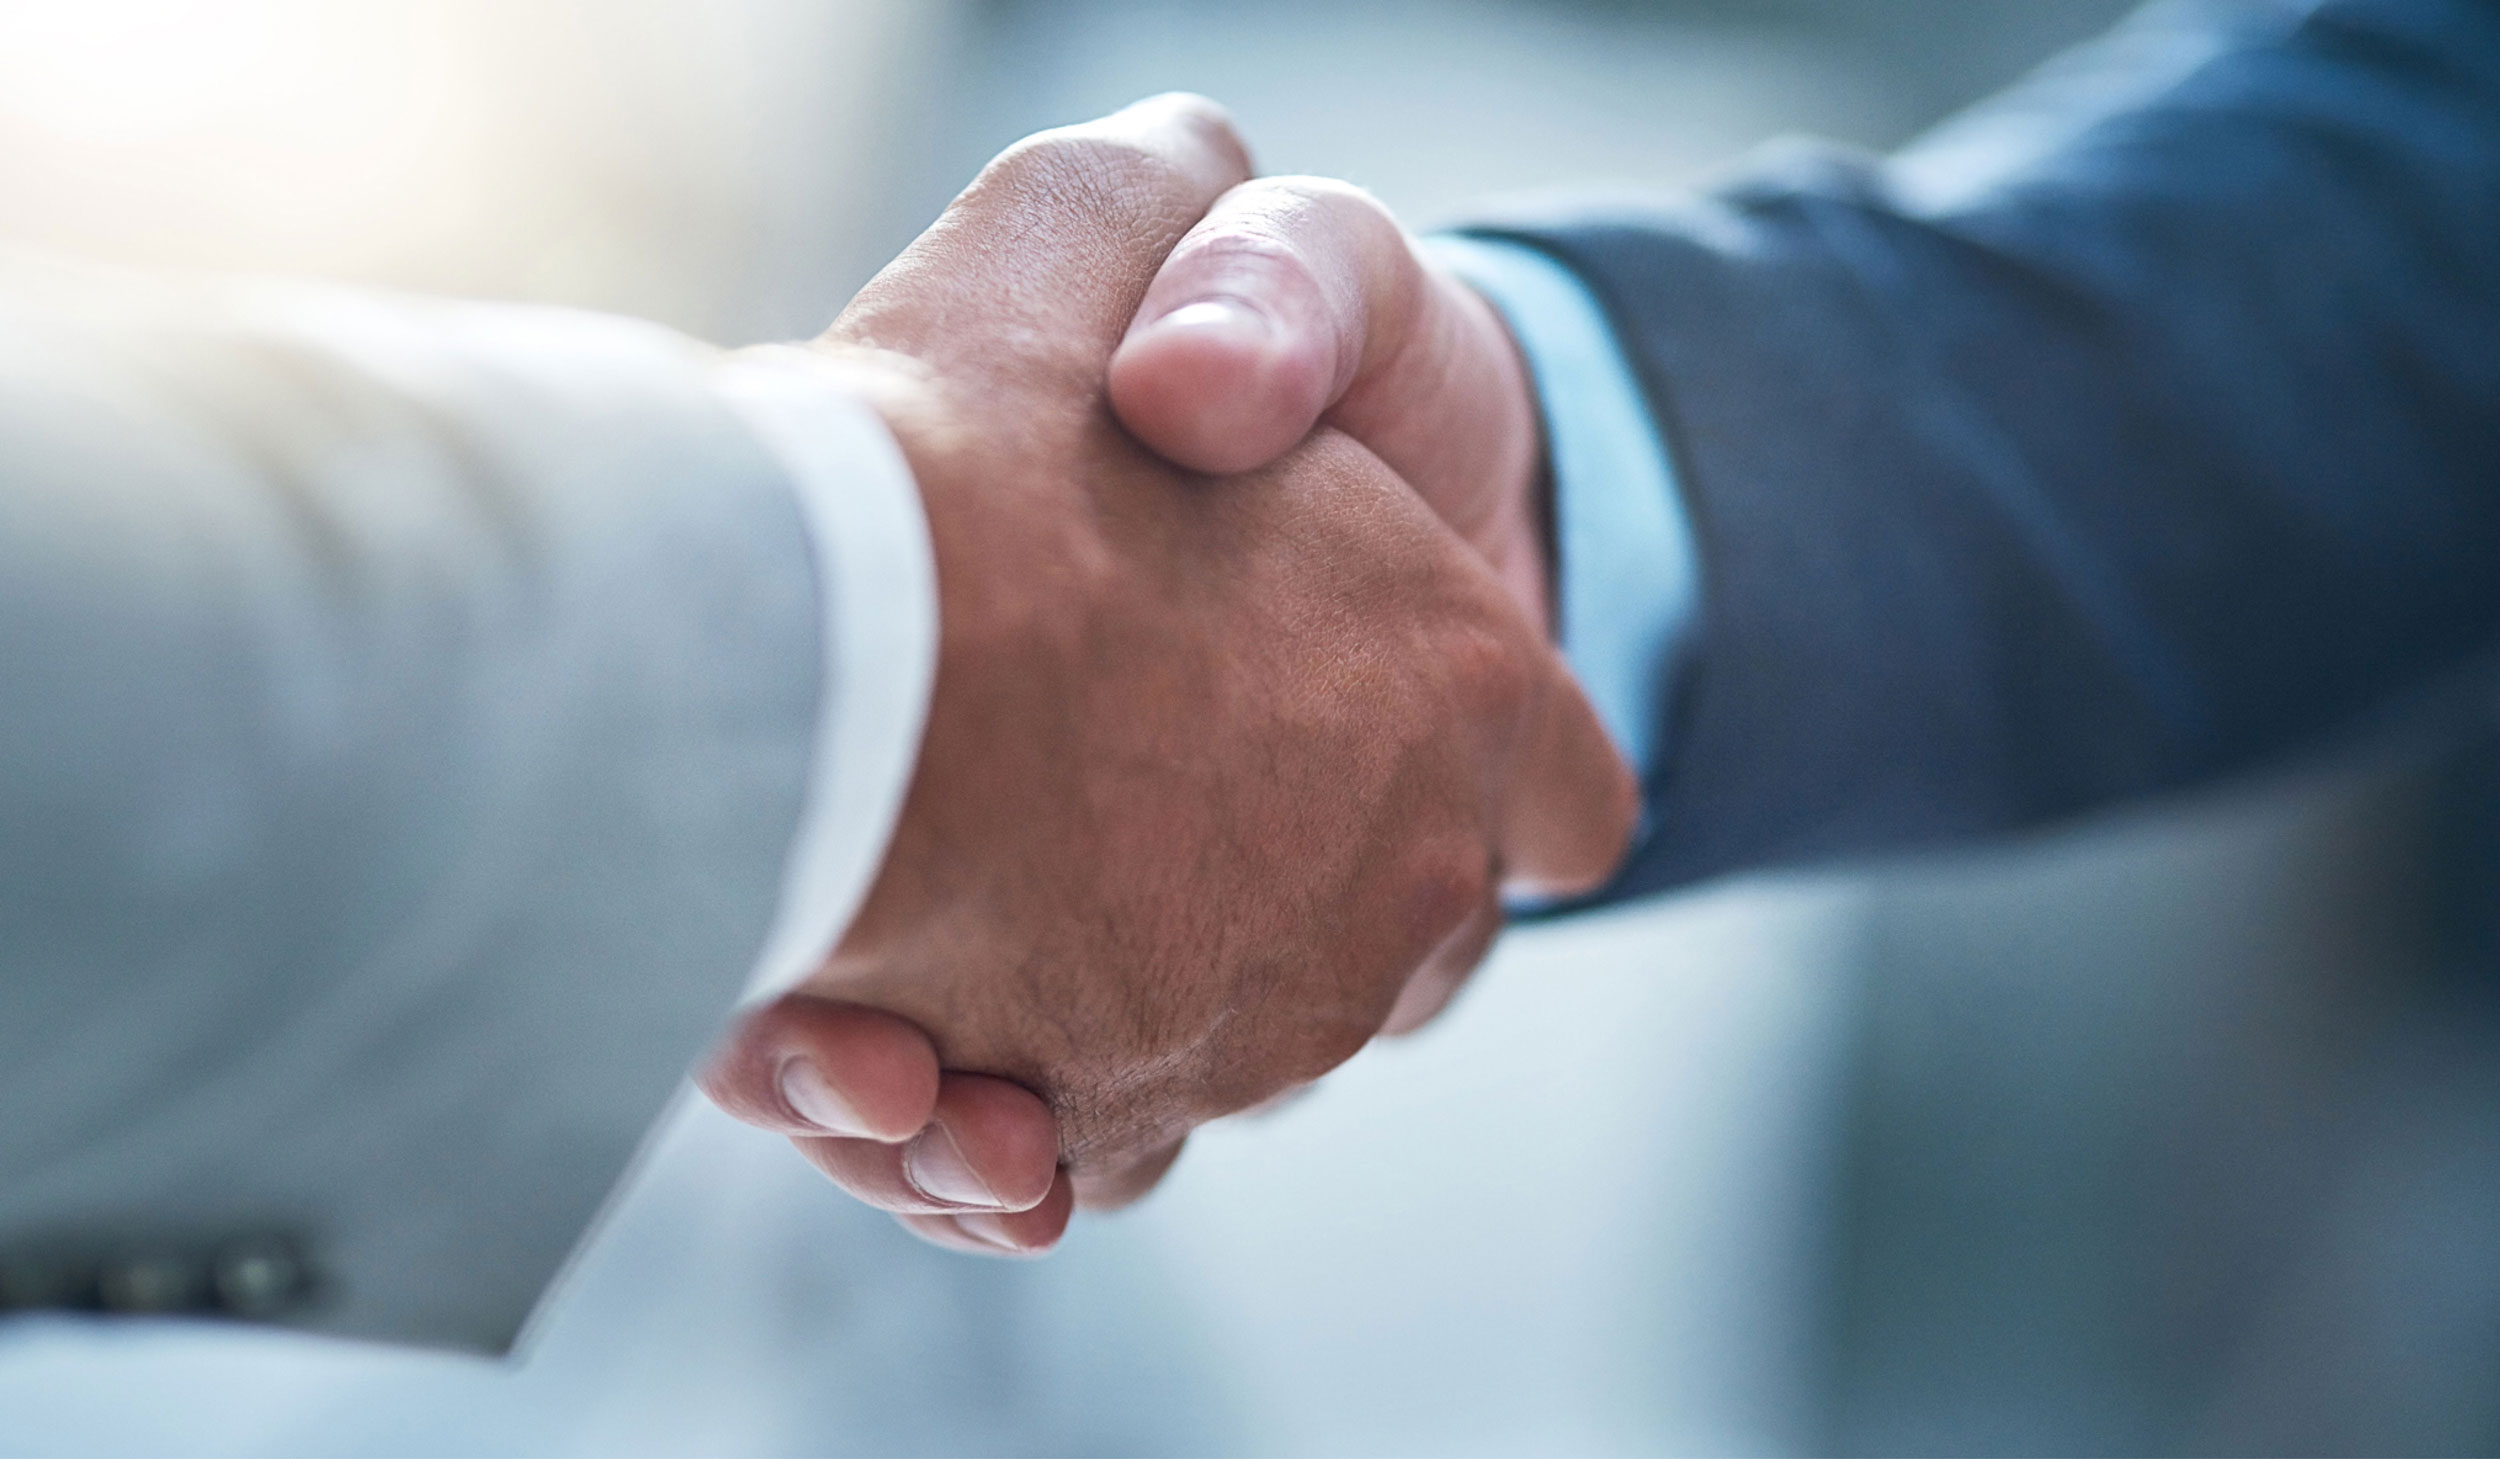 Backes & Backes Rechtsanwälte Mergers & Acquisitions / Private Equity